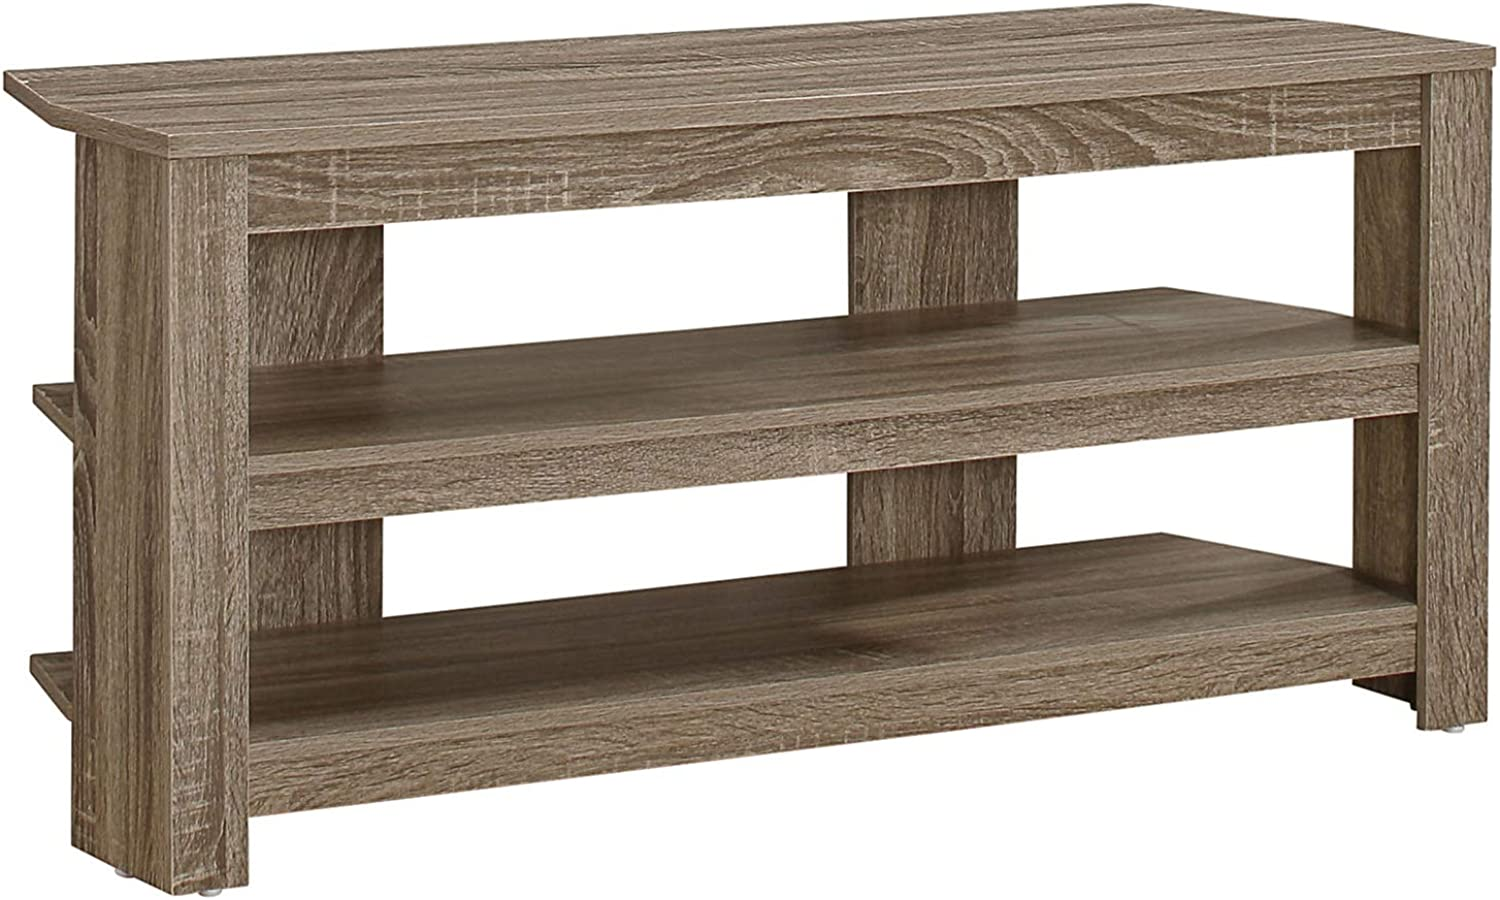 Monarch Specialties I 2569 TV Stand, Dark Taupe, 42